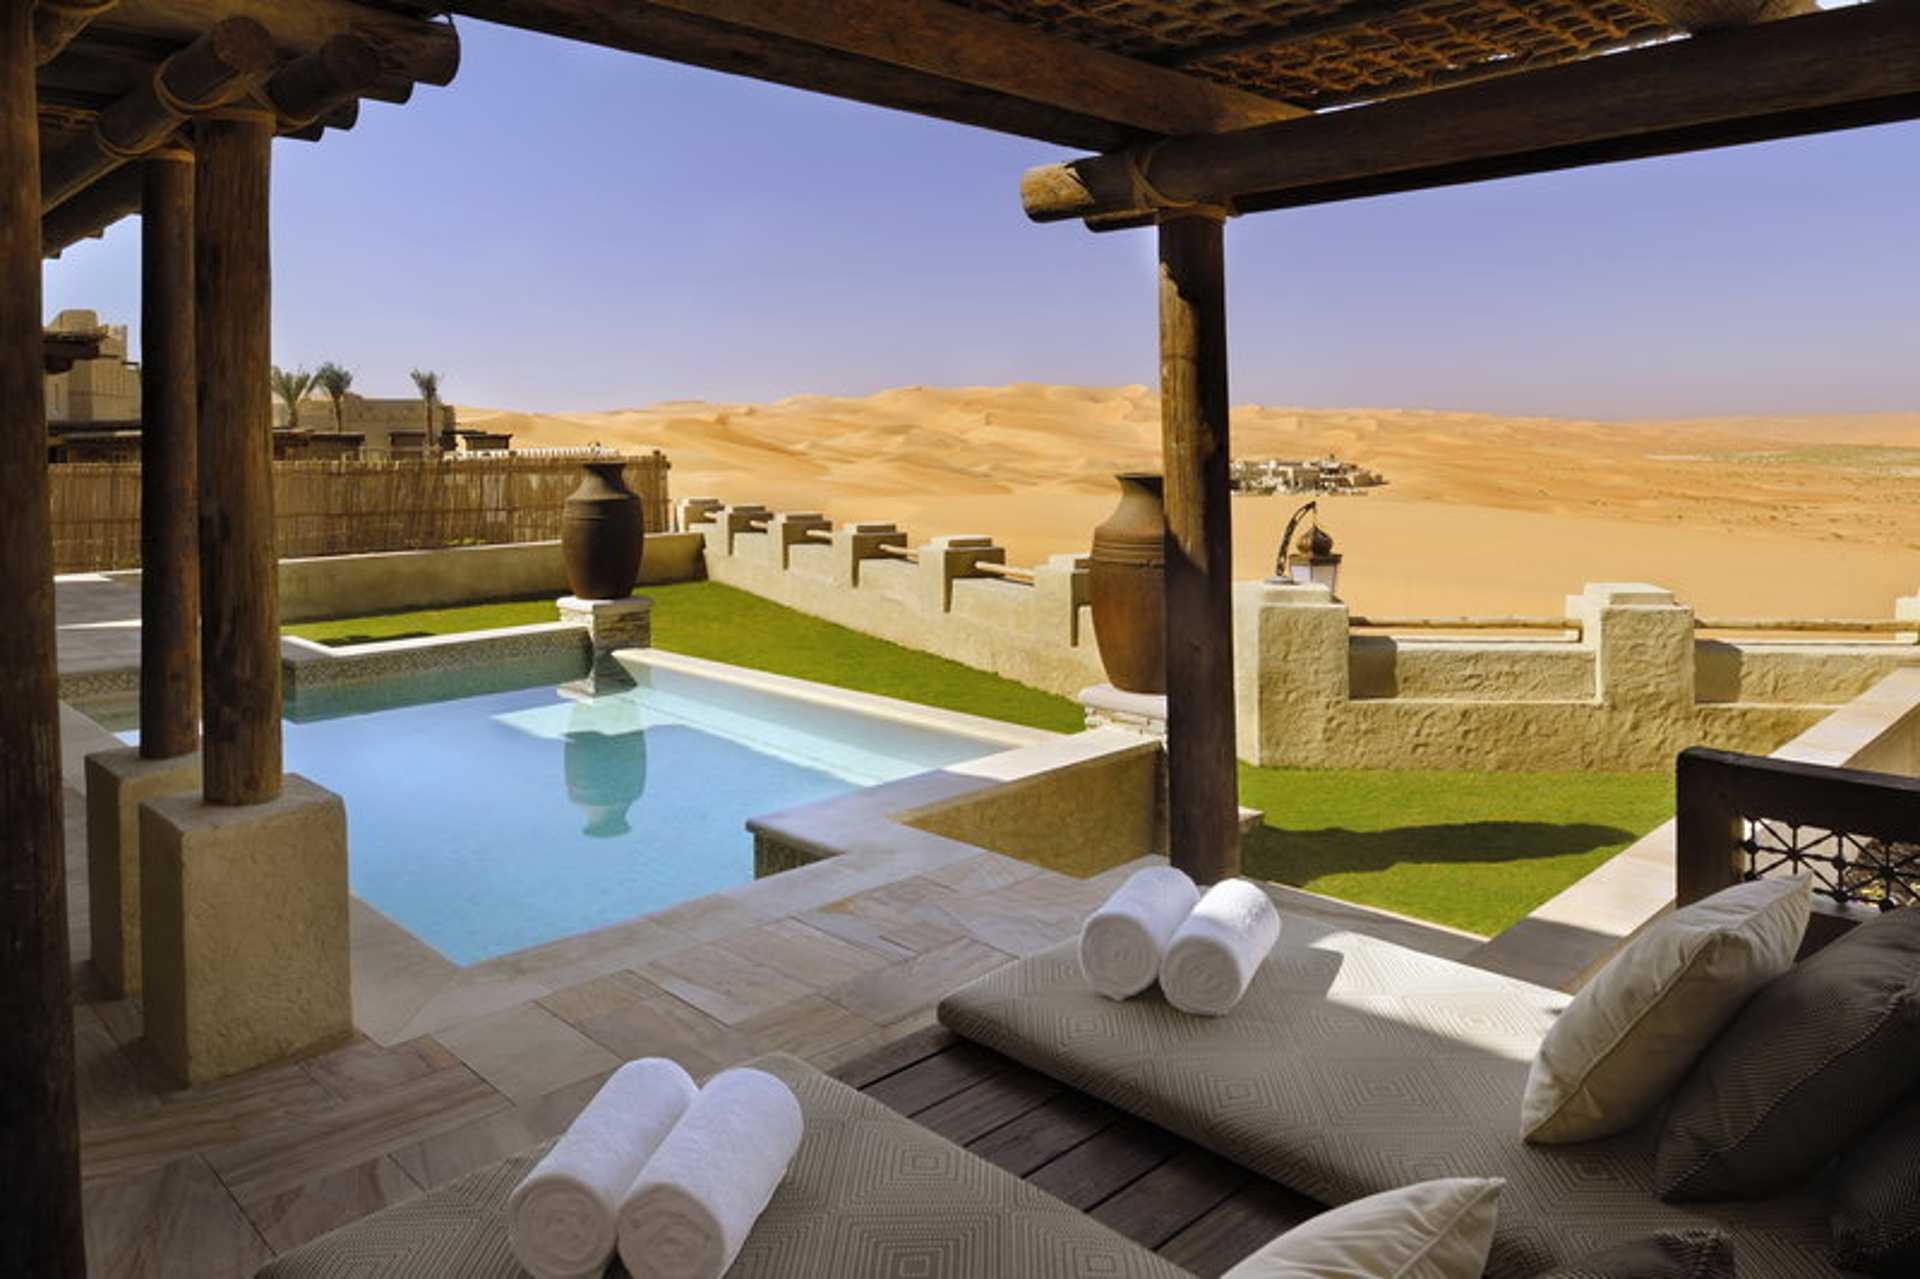 Abu Dhabi - Morning_outlook_from_private_pool_